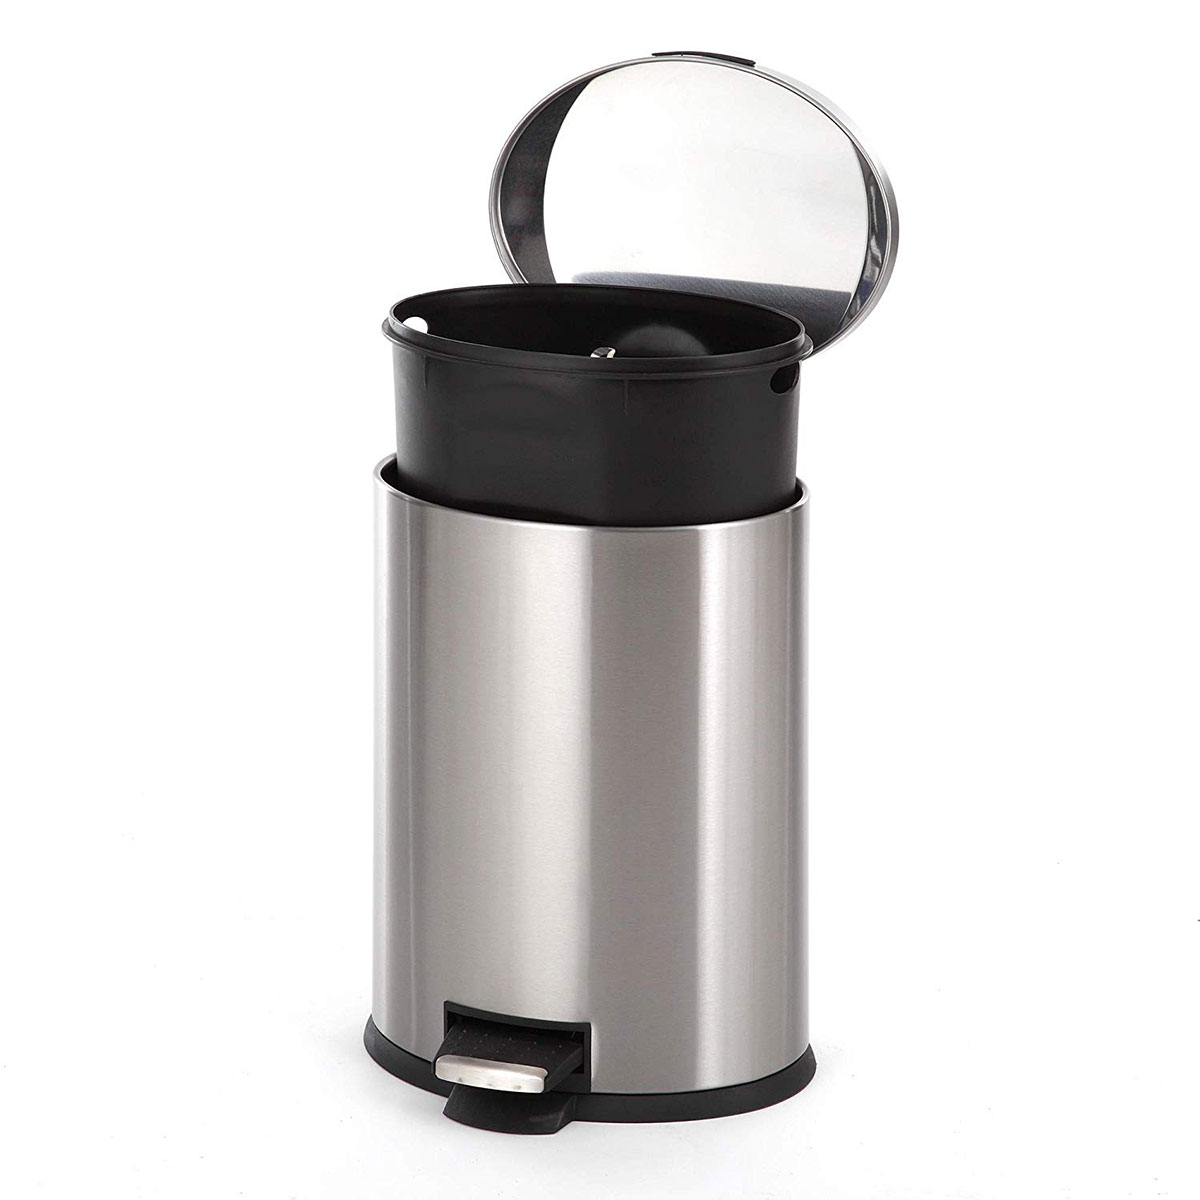 12 Liter Home Zone Stainless Steel Kitchen Trash Can with Oval Design and Step Pedal 3 Gallon Storage with Removable Plastic Trash Bin Liner Silver